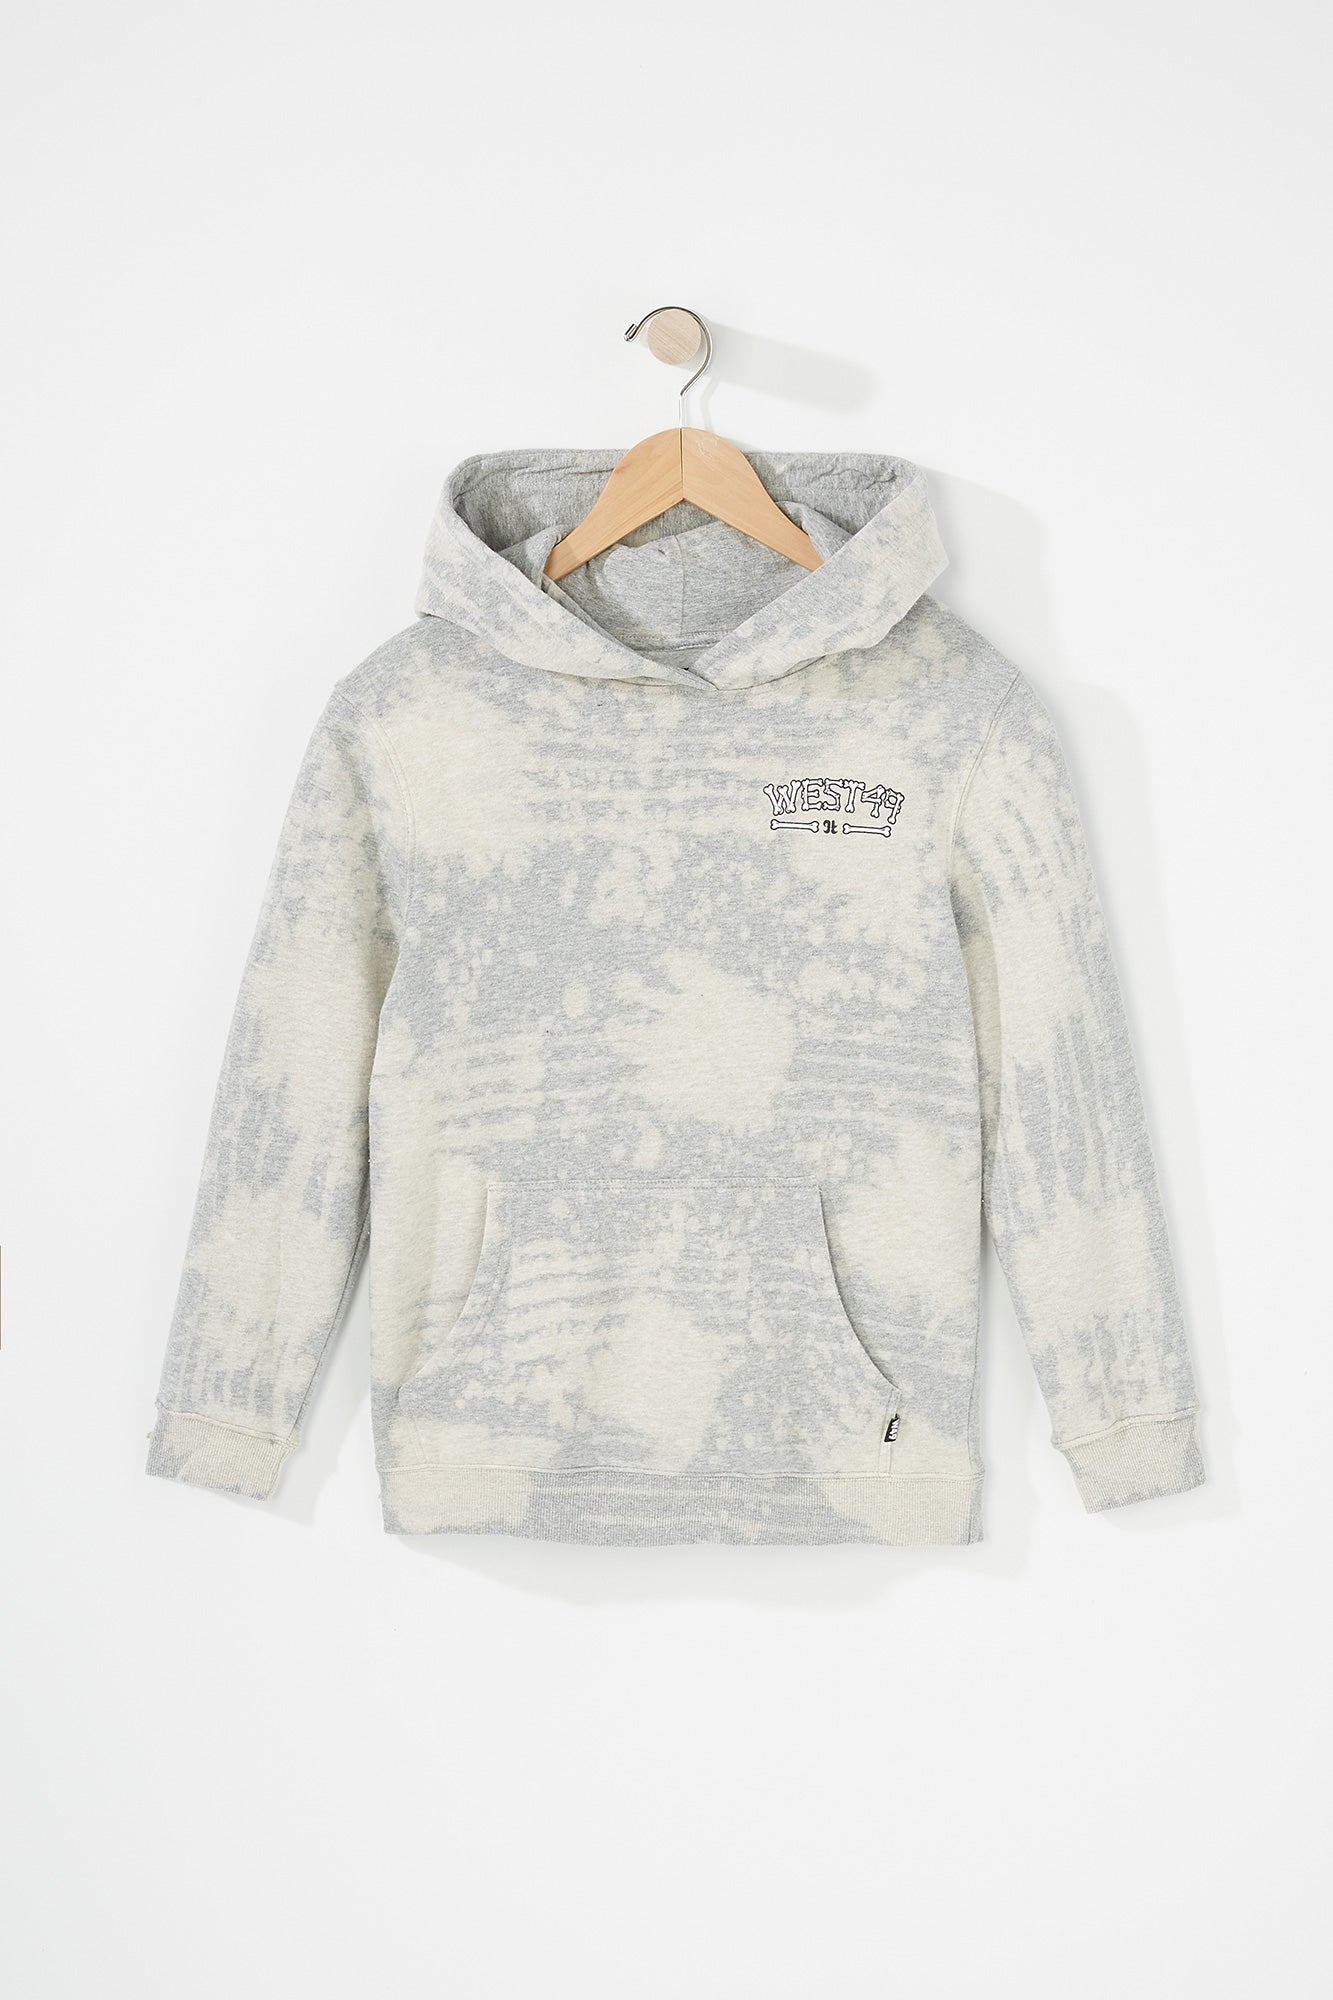 Evolve X West 49 Youth  Bleach Grey Hoodie